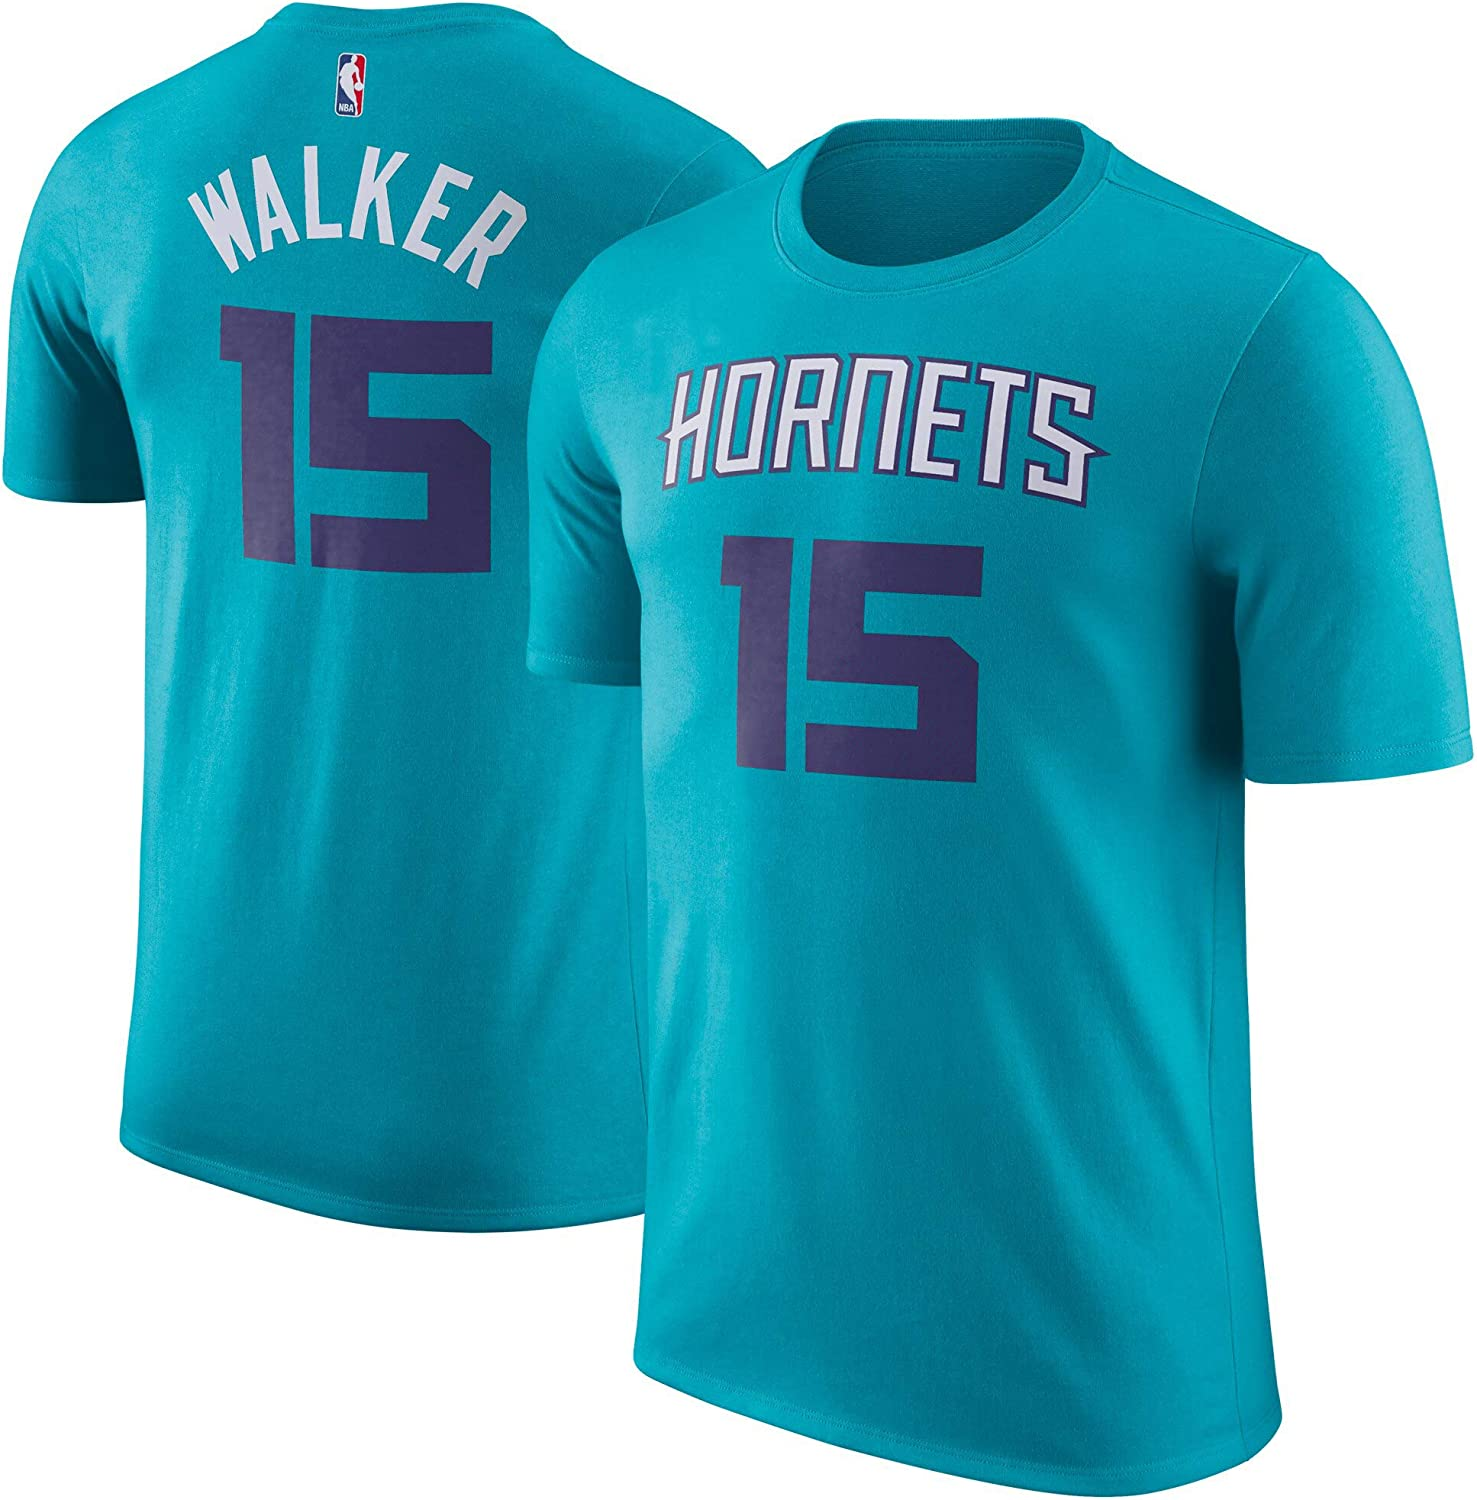 Outerstuff Kemba Walker Charlotte Hornets #15 Teal Youth Name /& Number Player T-Shirt